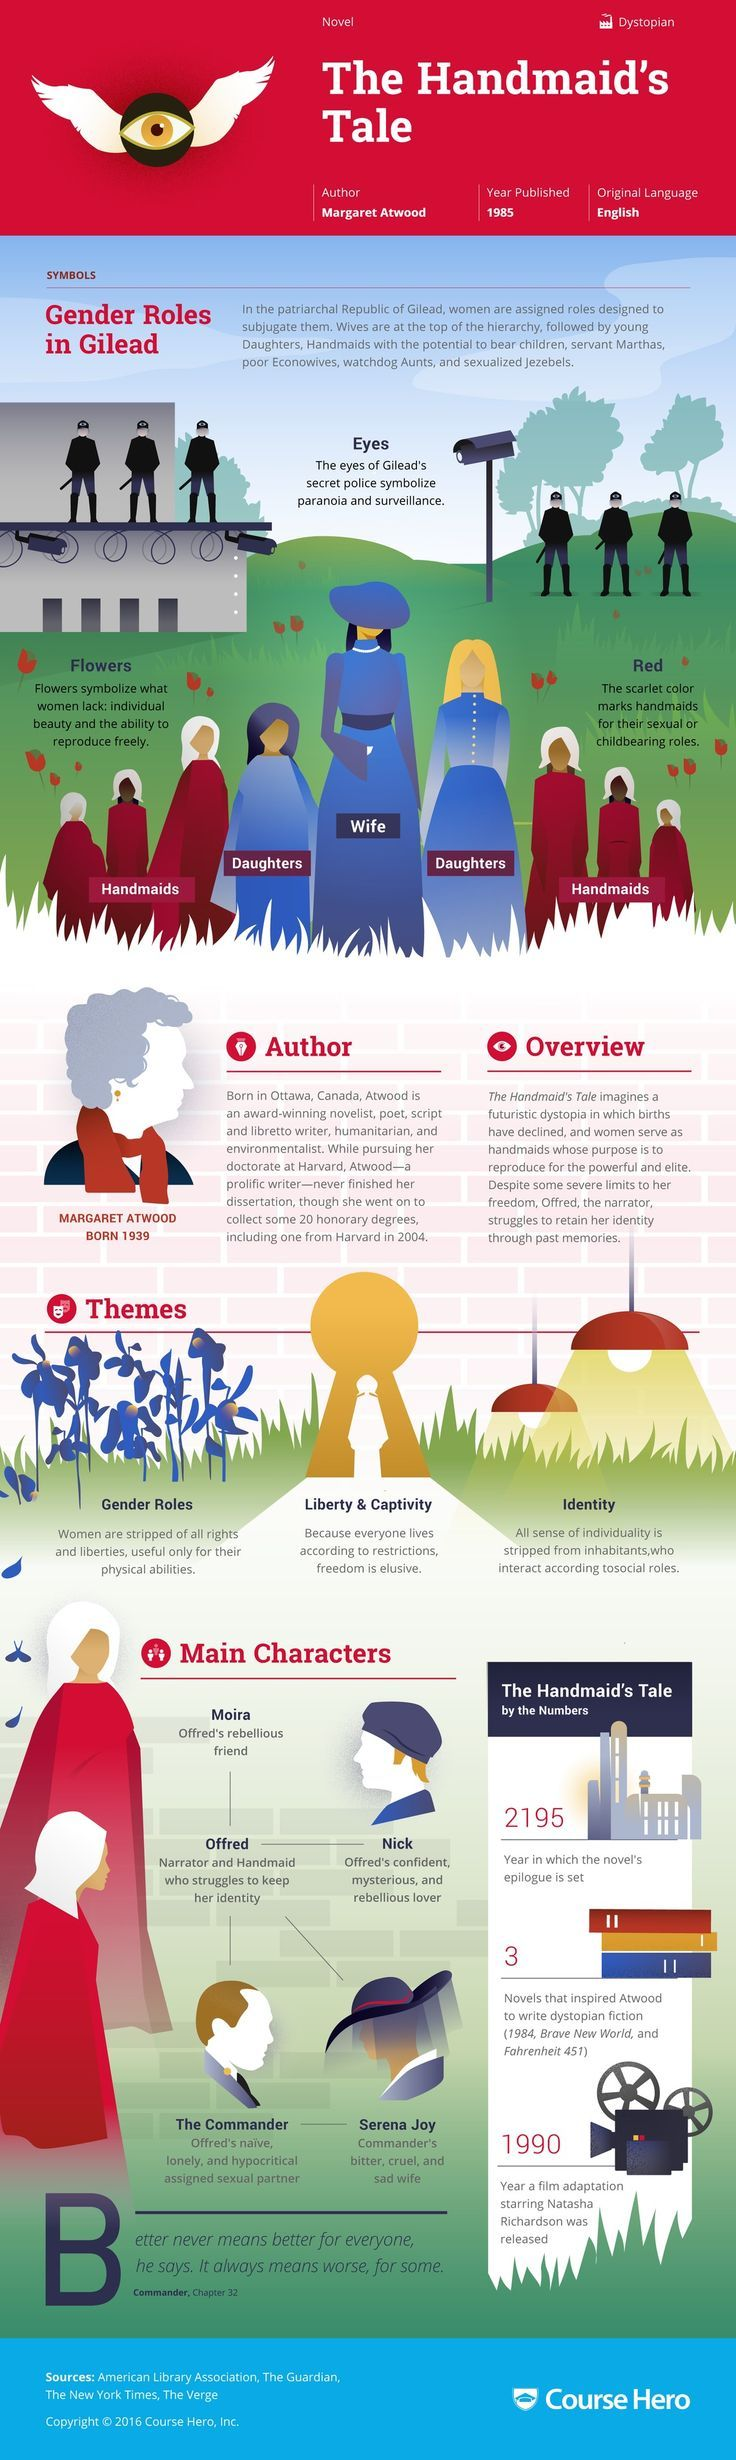 The Handmaid's Tale Infographic   Course Hero